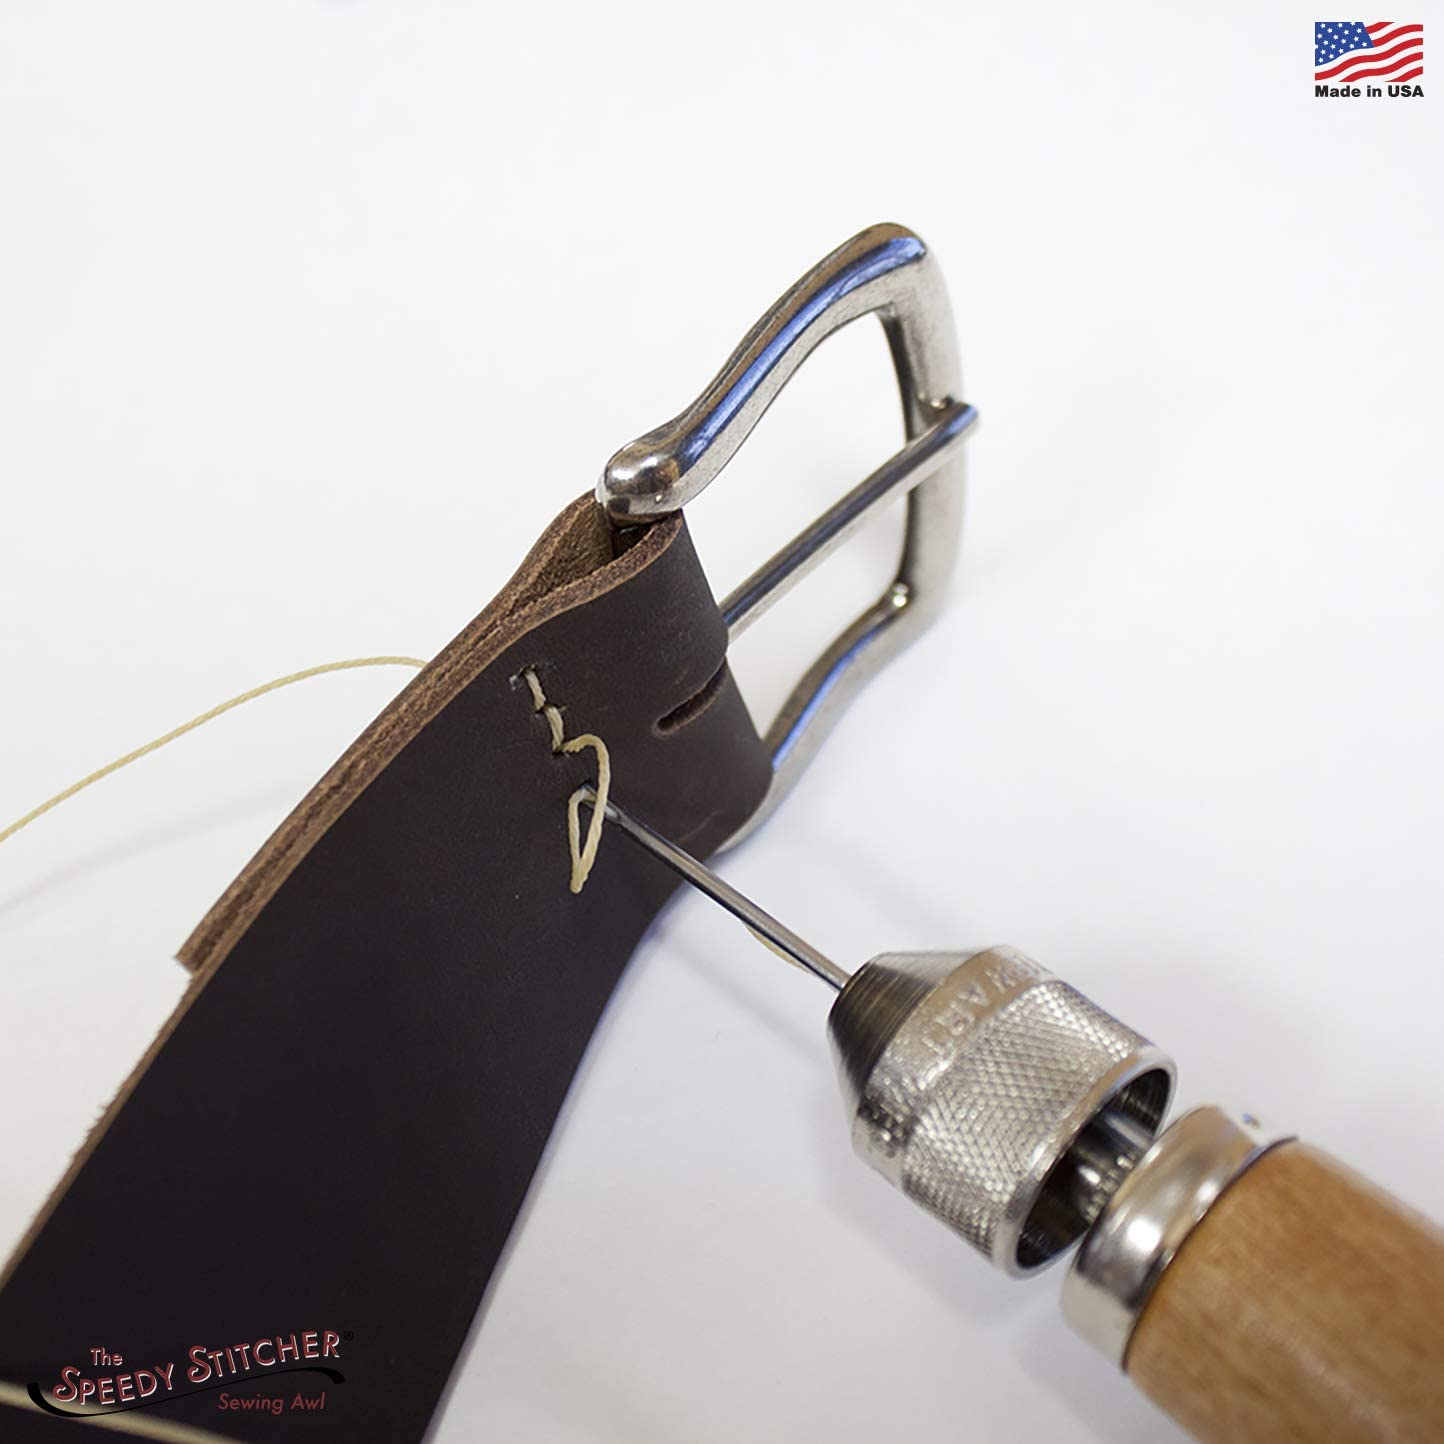 New Speedy Stitcher Sewing Awl SEW200